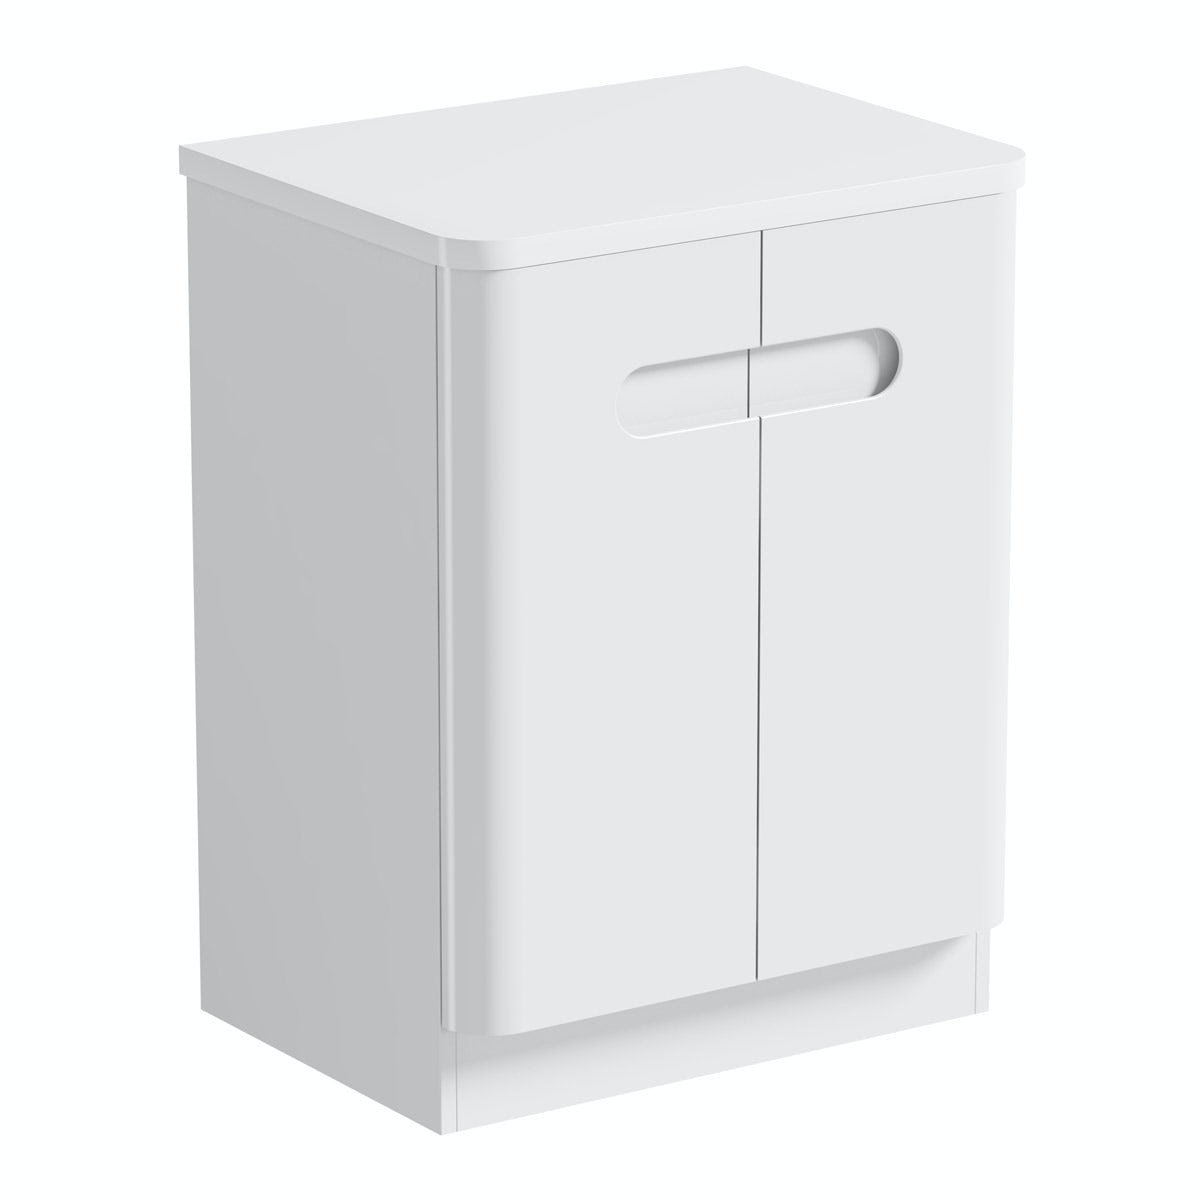 Mode Ellis white vanity door unit and countertop 600mm